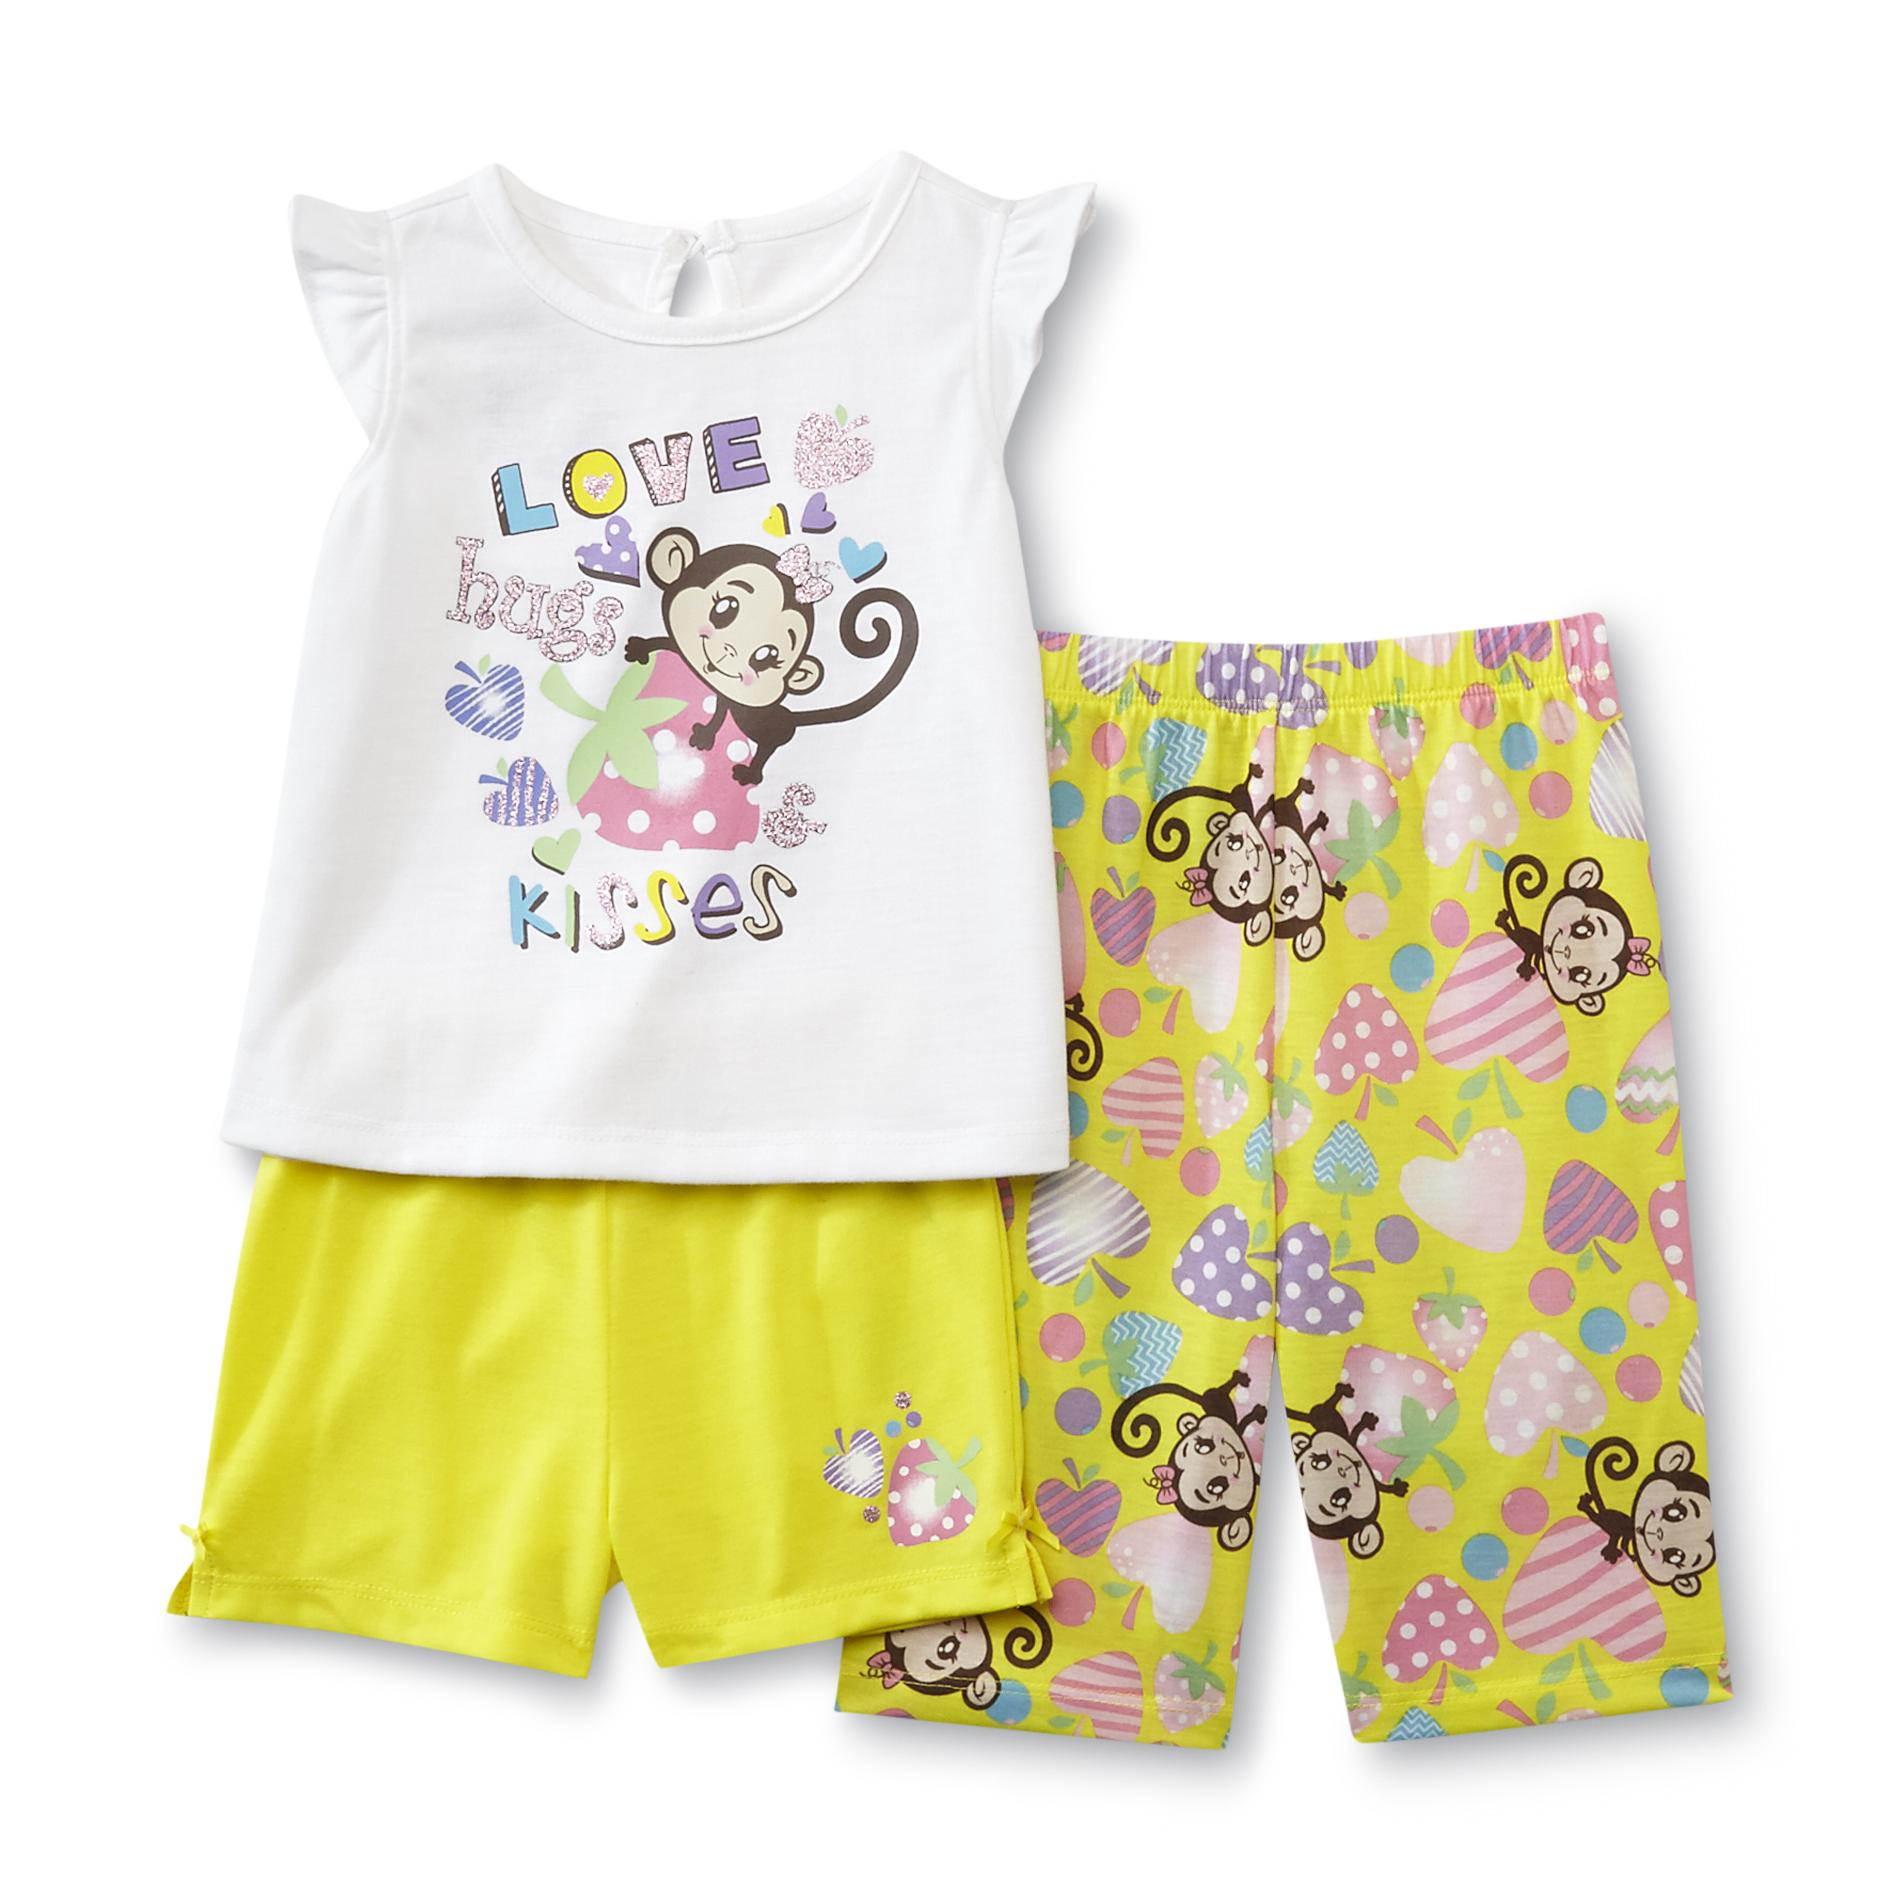 Infant & Toddler Girl's Pajama Top, Shorts &